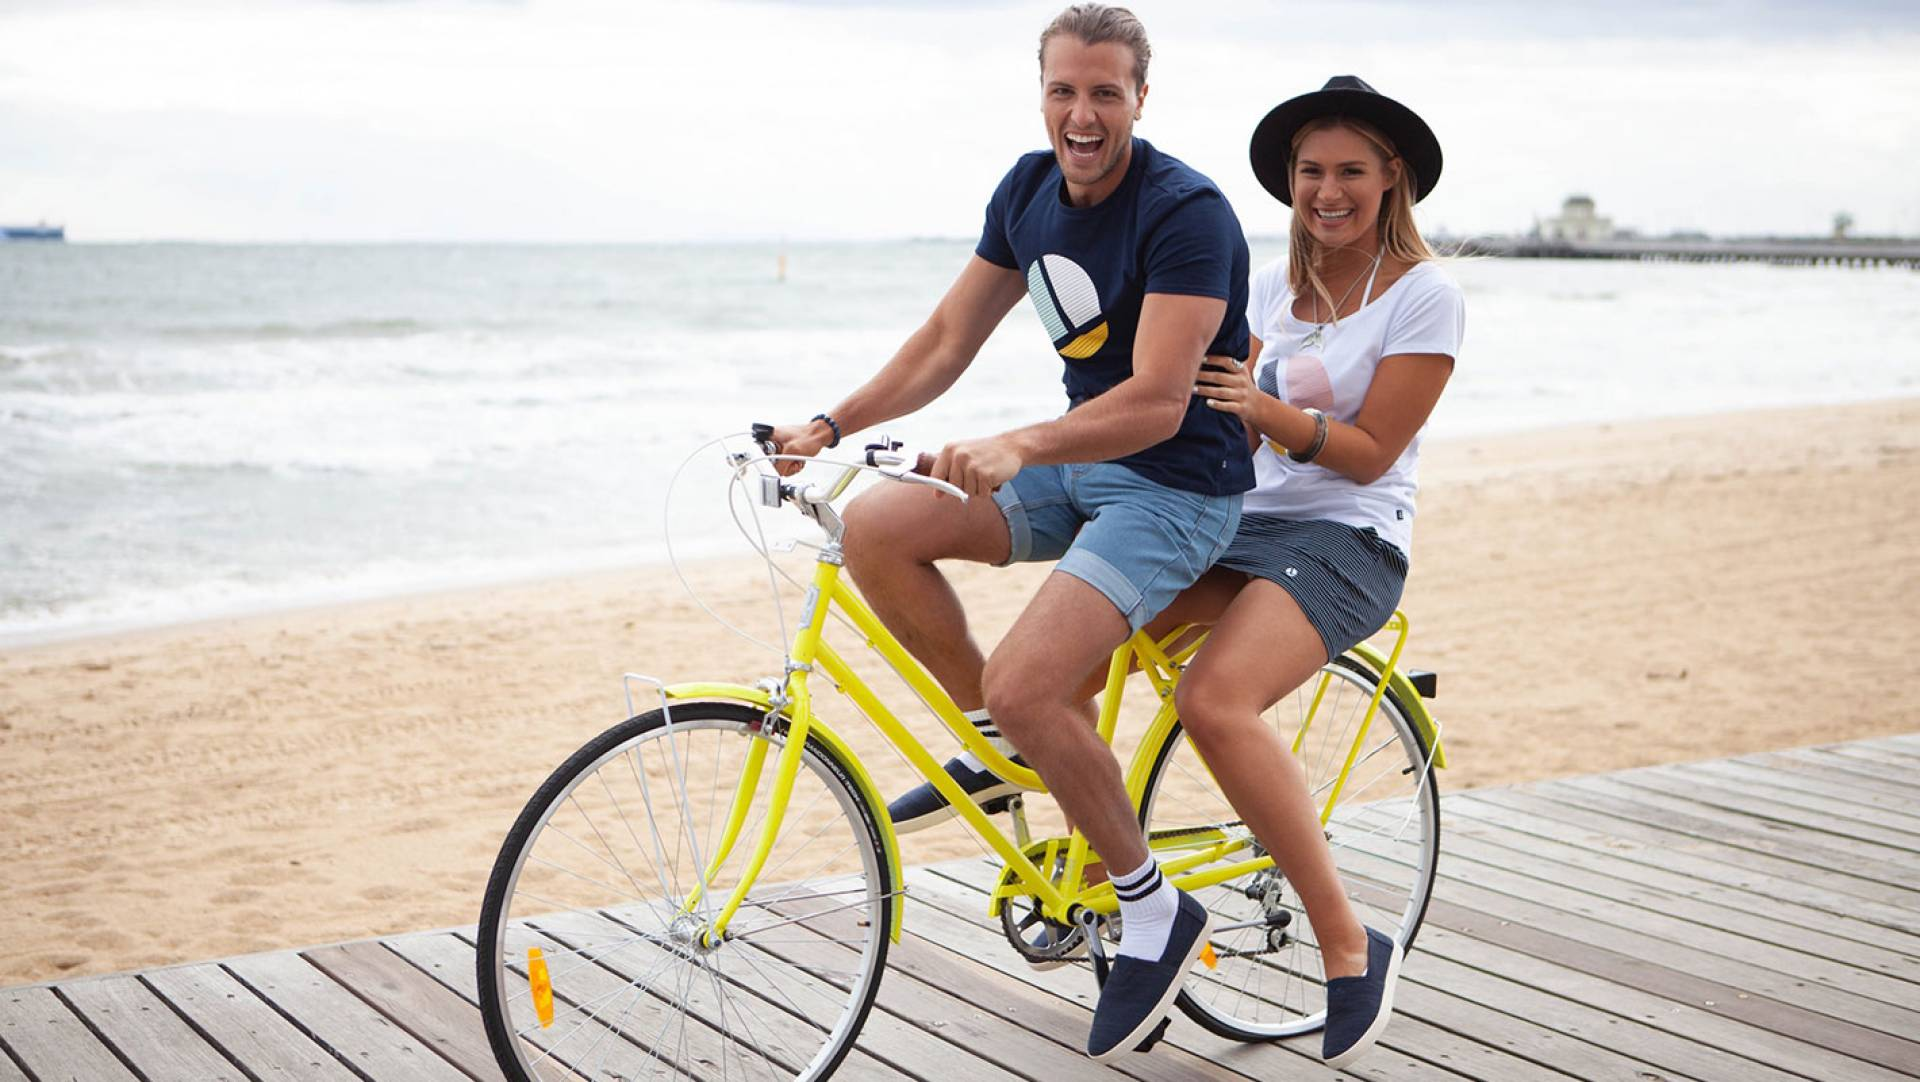 Australian Open Fashion Photoshoot - Lifestyle Range